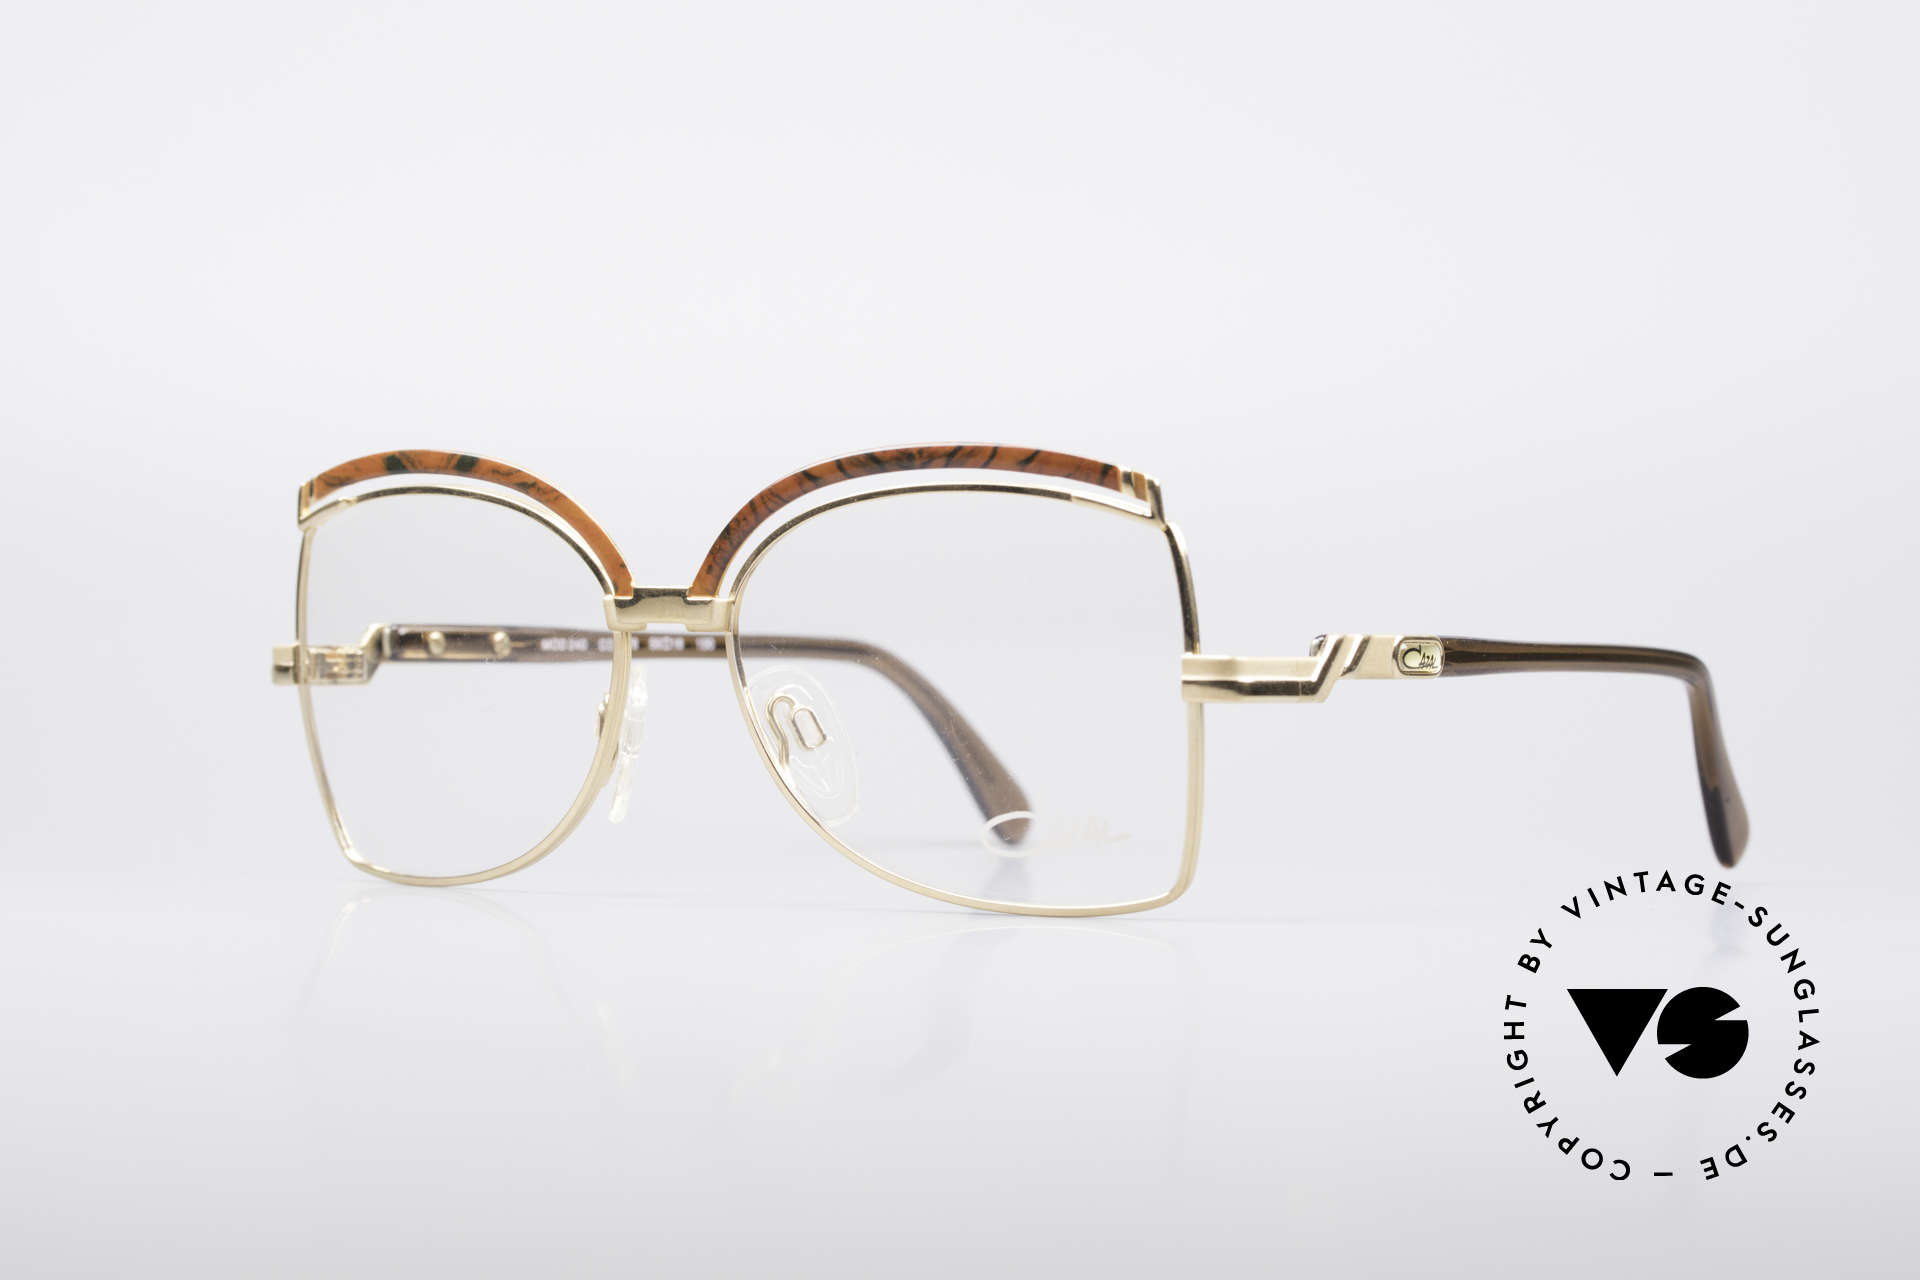 Cazal 240 90's Ladies Designer Frame, terrific combination of forms, colors & materials, Made for Women